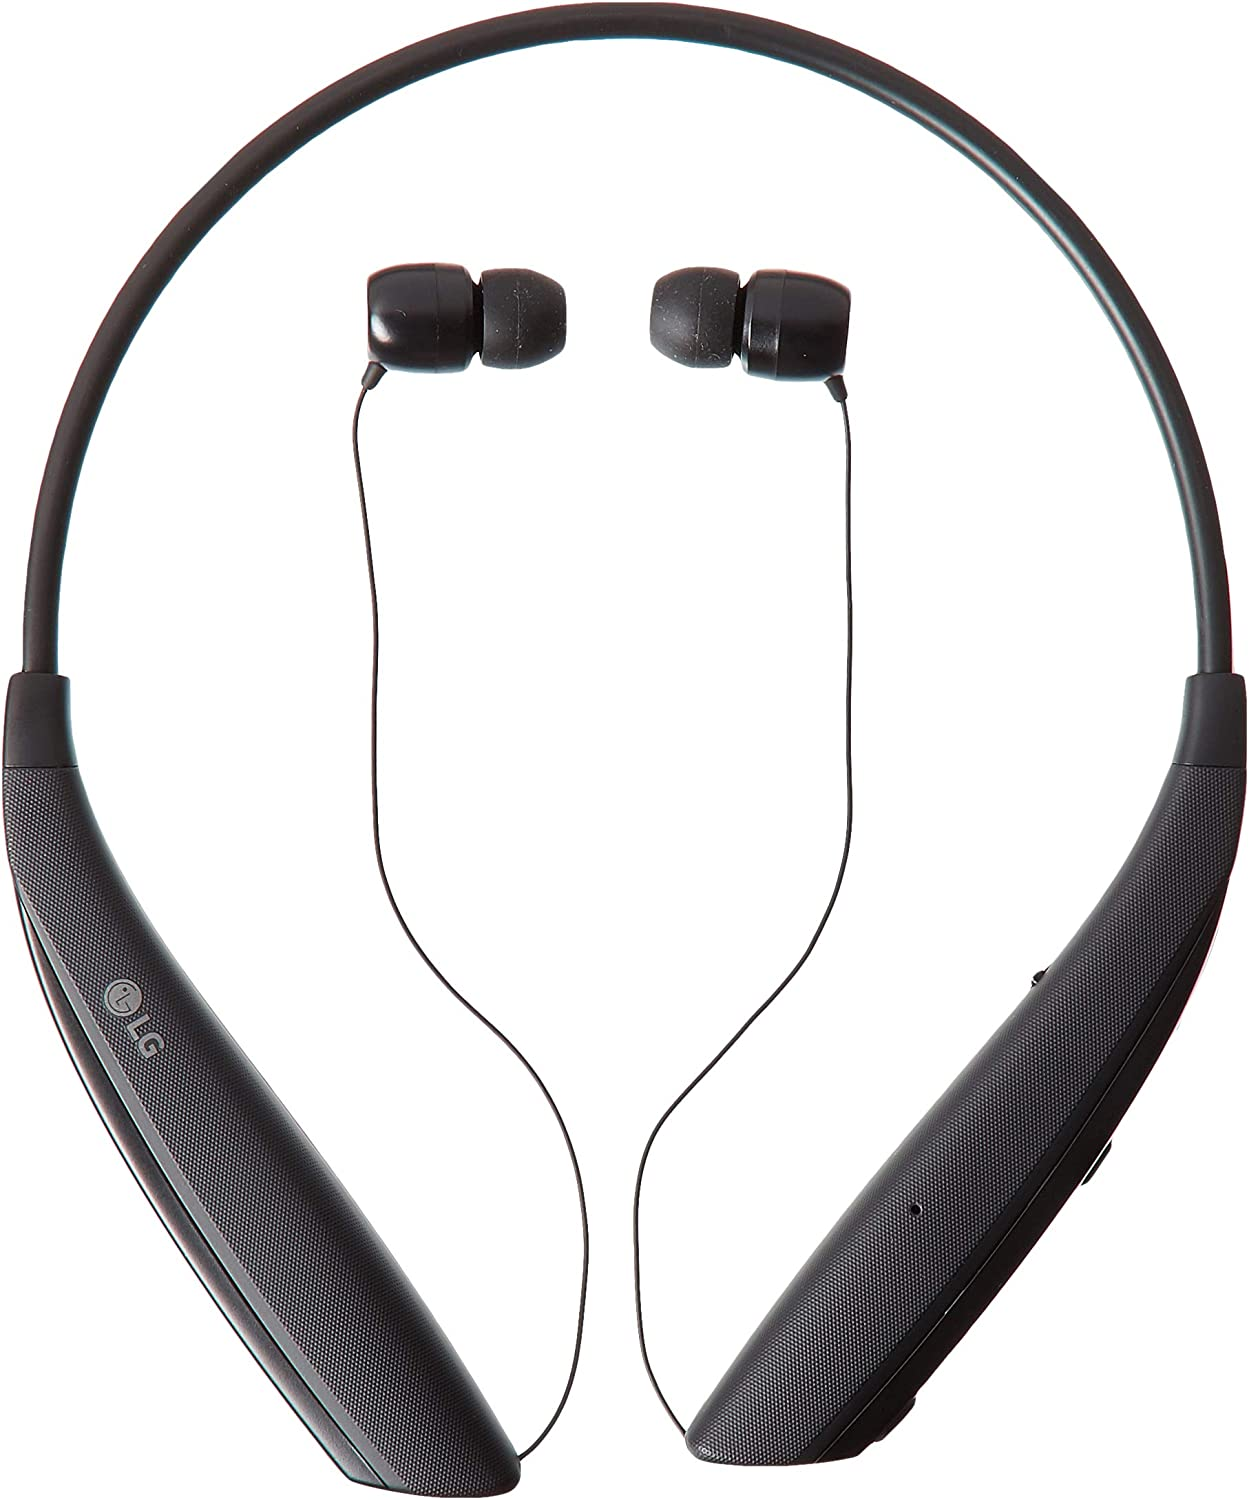 LG Tone Ultra α Bluetooth Wireless Stereo Neckband Earbuds (HBS-830) - Black